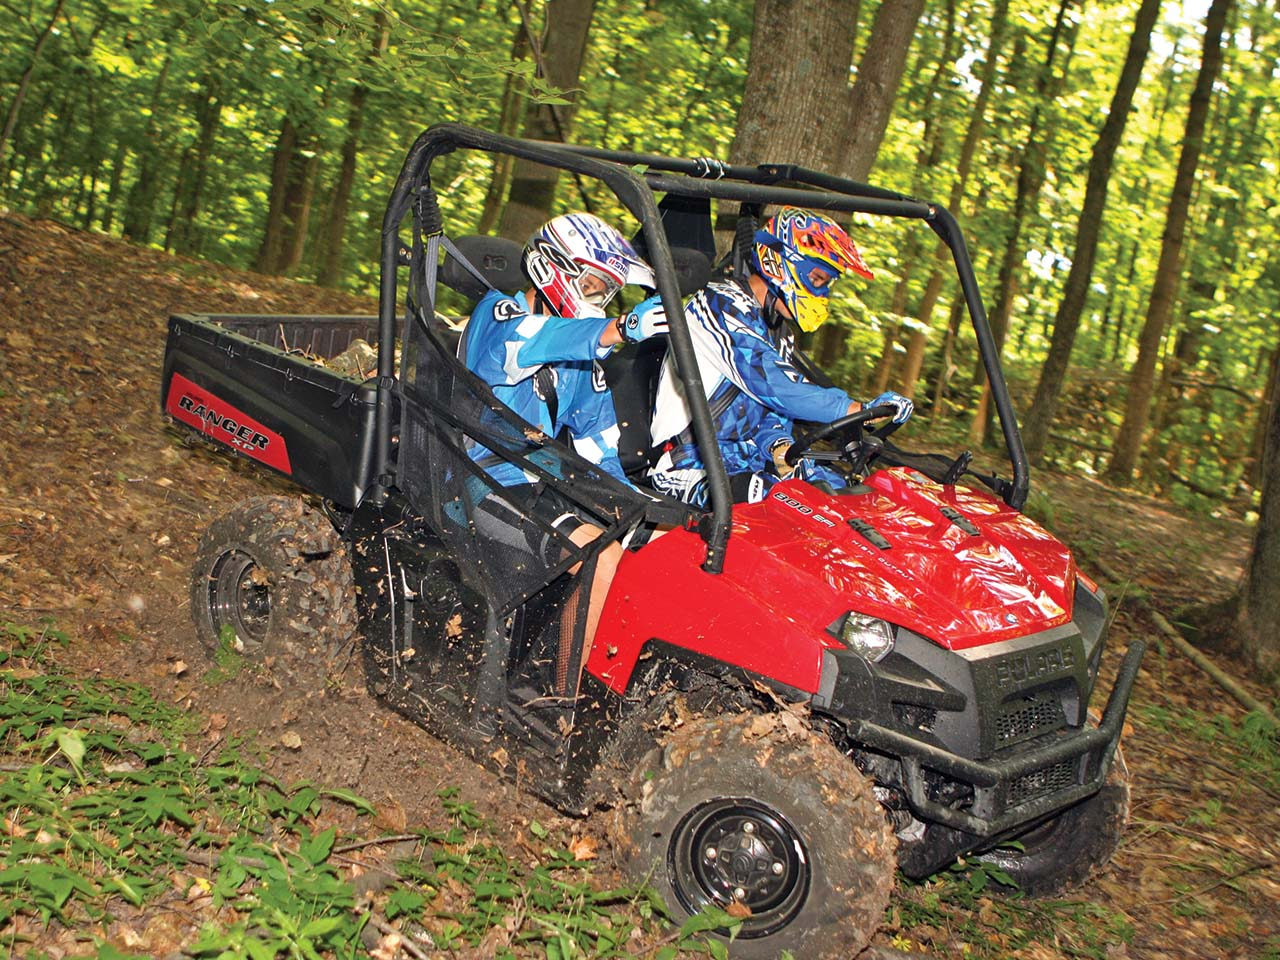 hight resolution of 2012 polaris ranger xp800 red front right riding